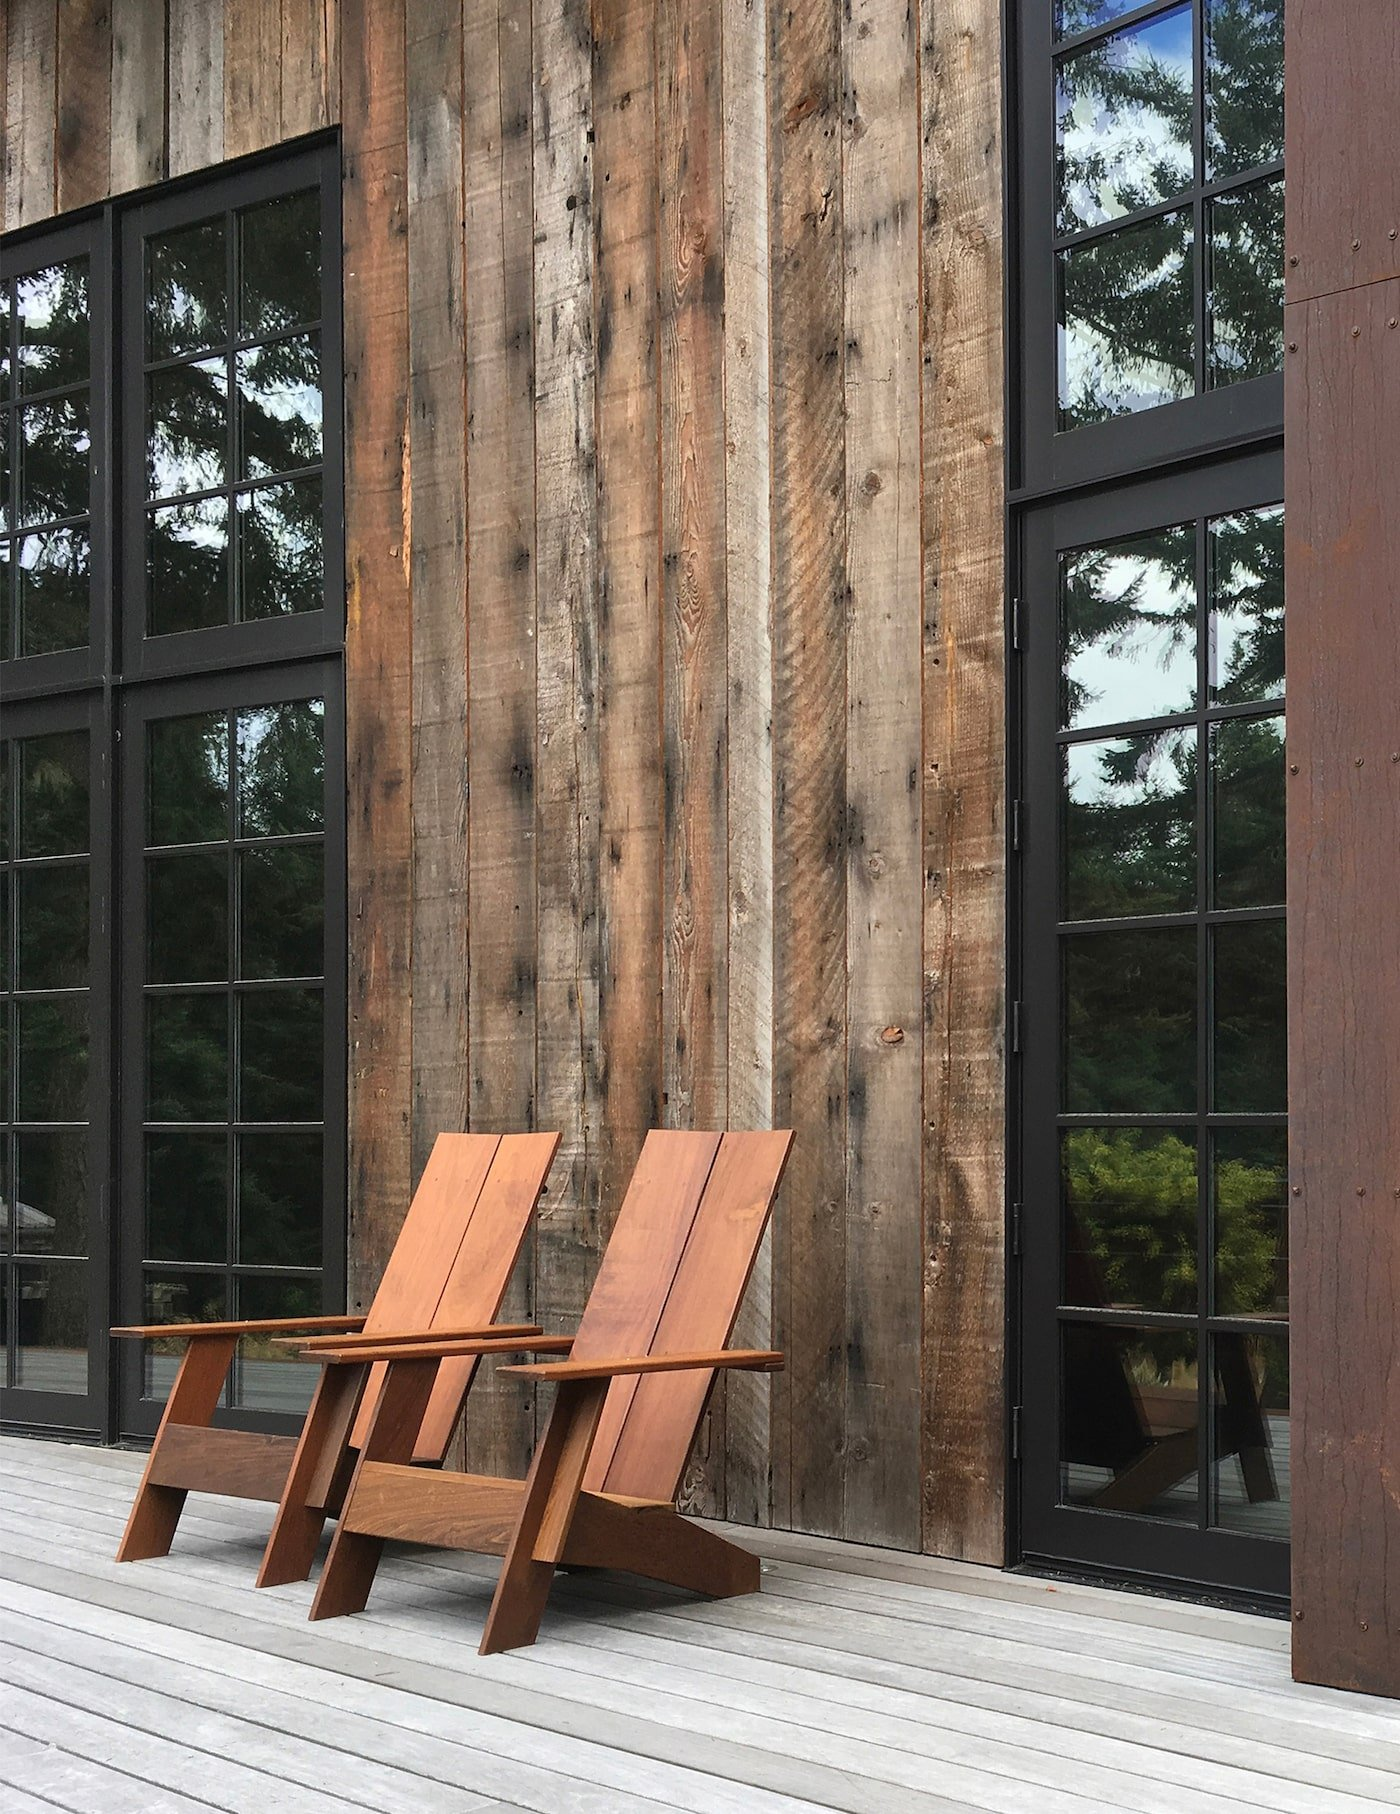 Close up of timber chairs in front of timber clad eco retreat